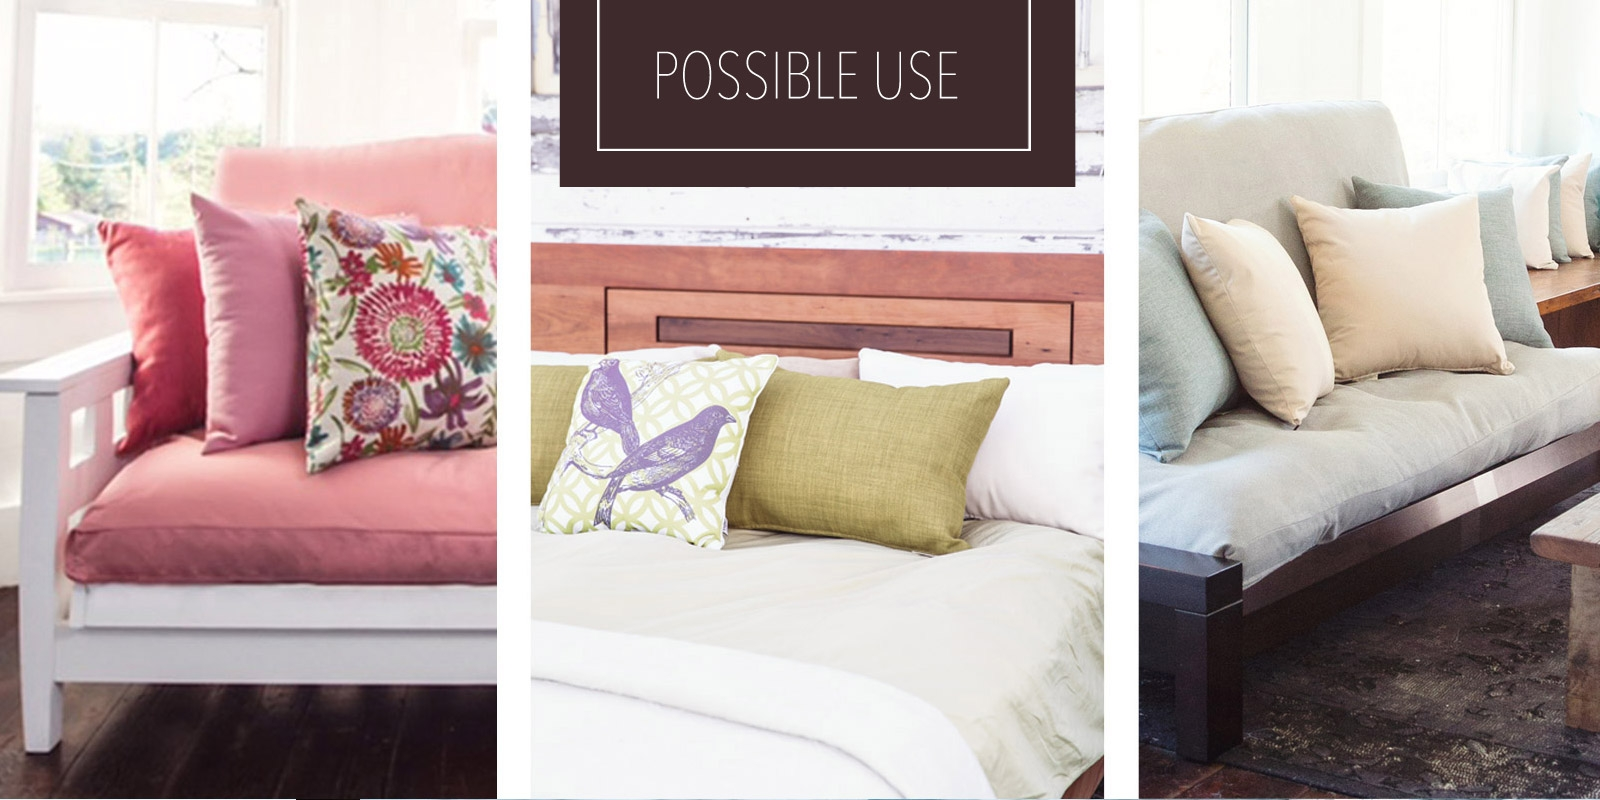 Futons - Possible Use